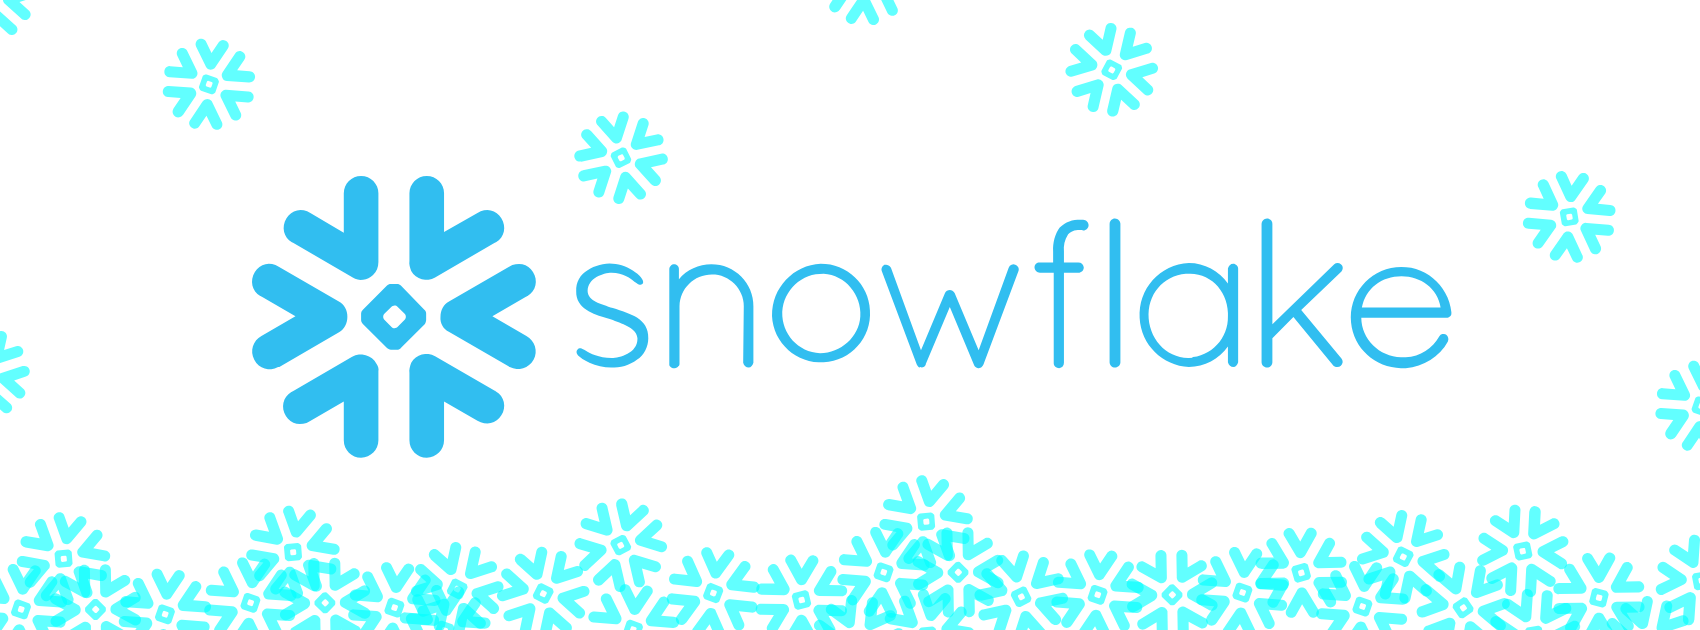 Snowflake: Causing an avalanche of data!